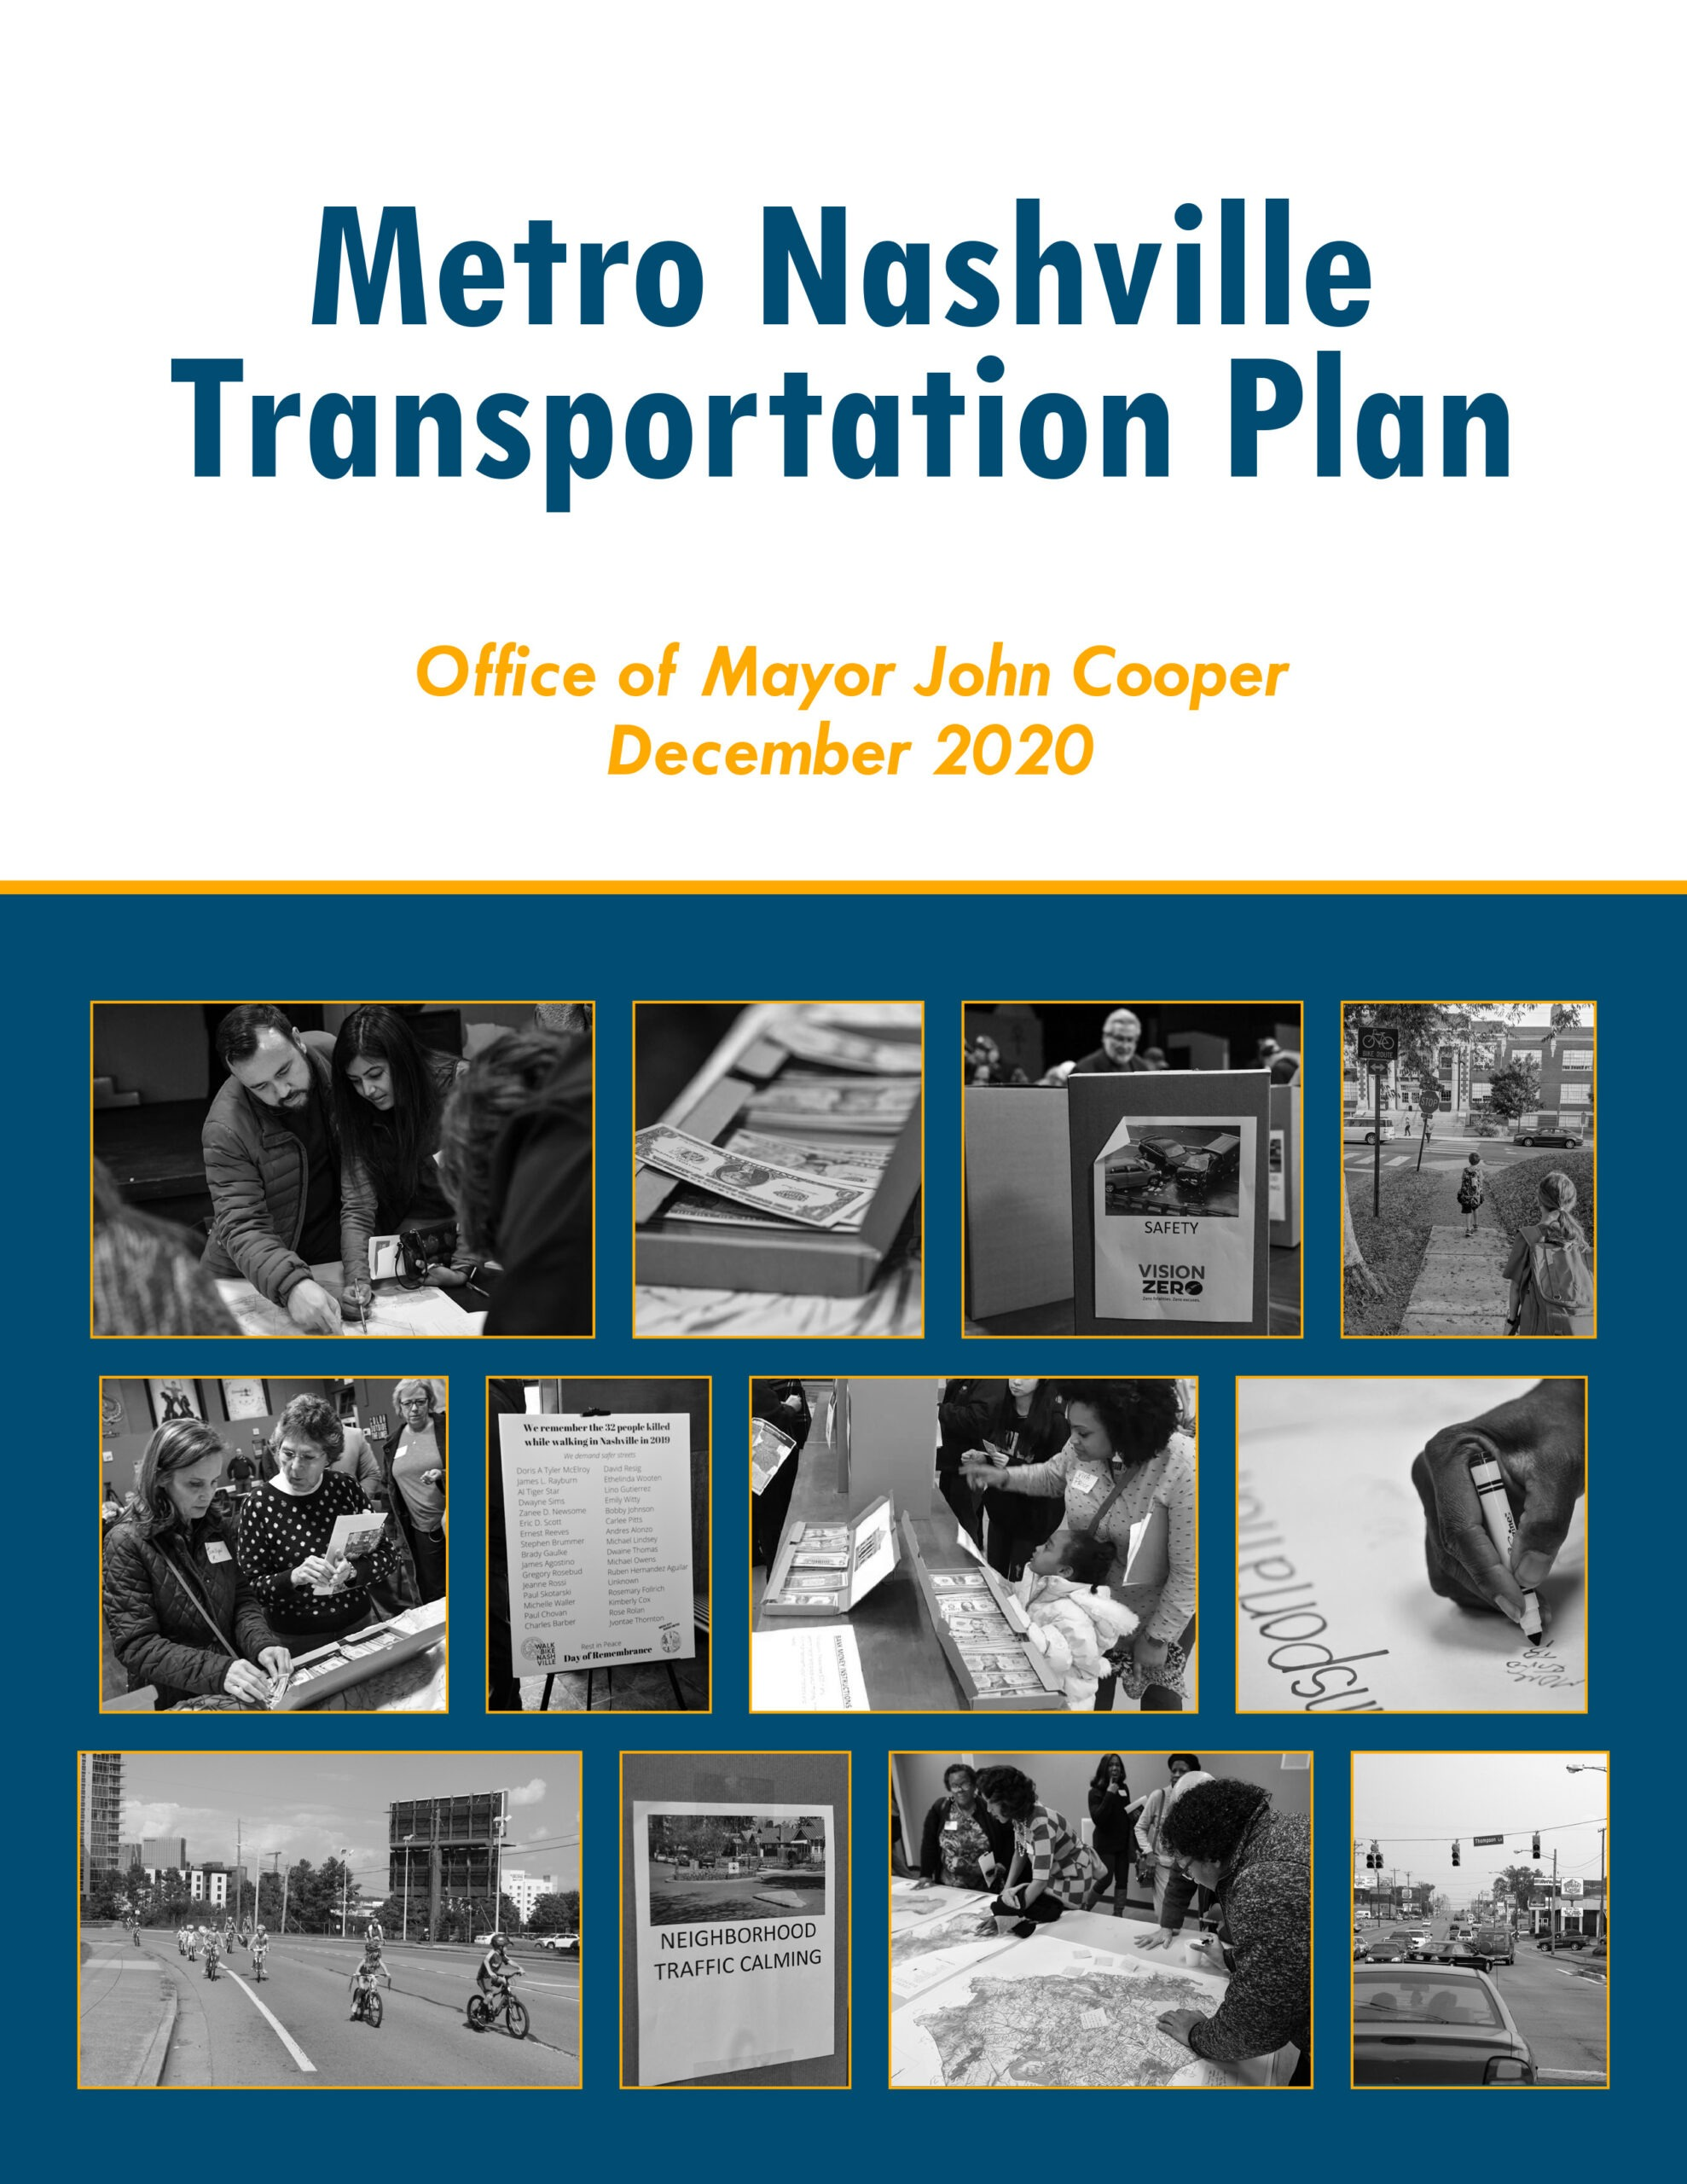 The Office of Mayor John Cooper Released the Metro Nashville Transportation Plan